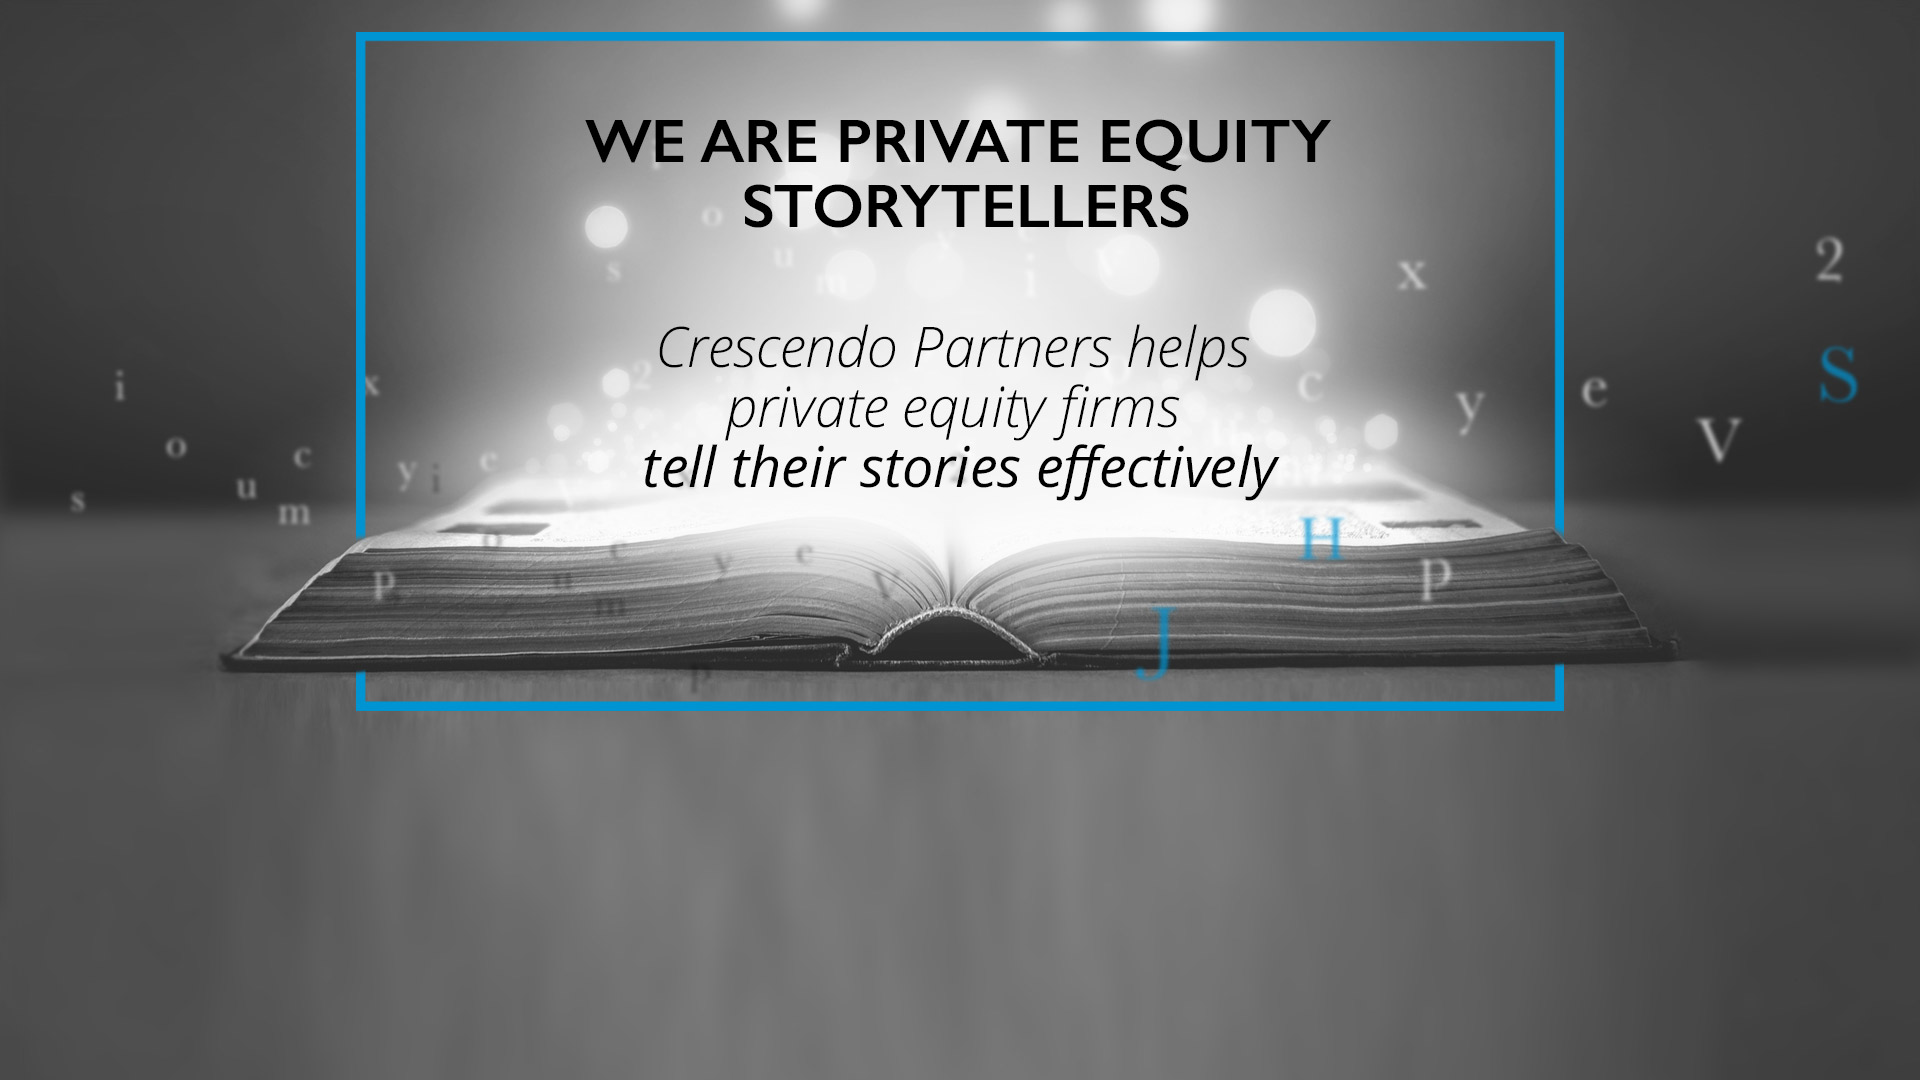 The book with private equity stories